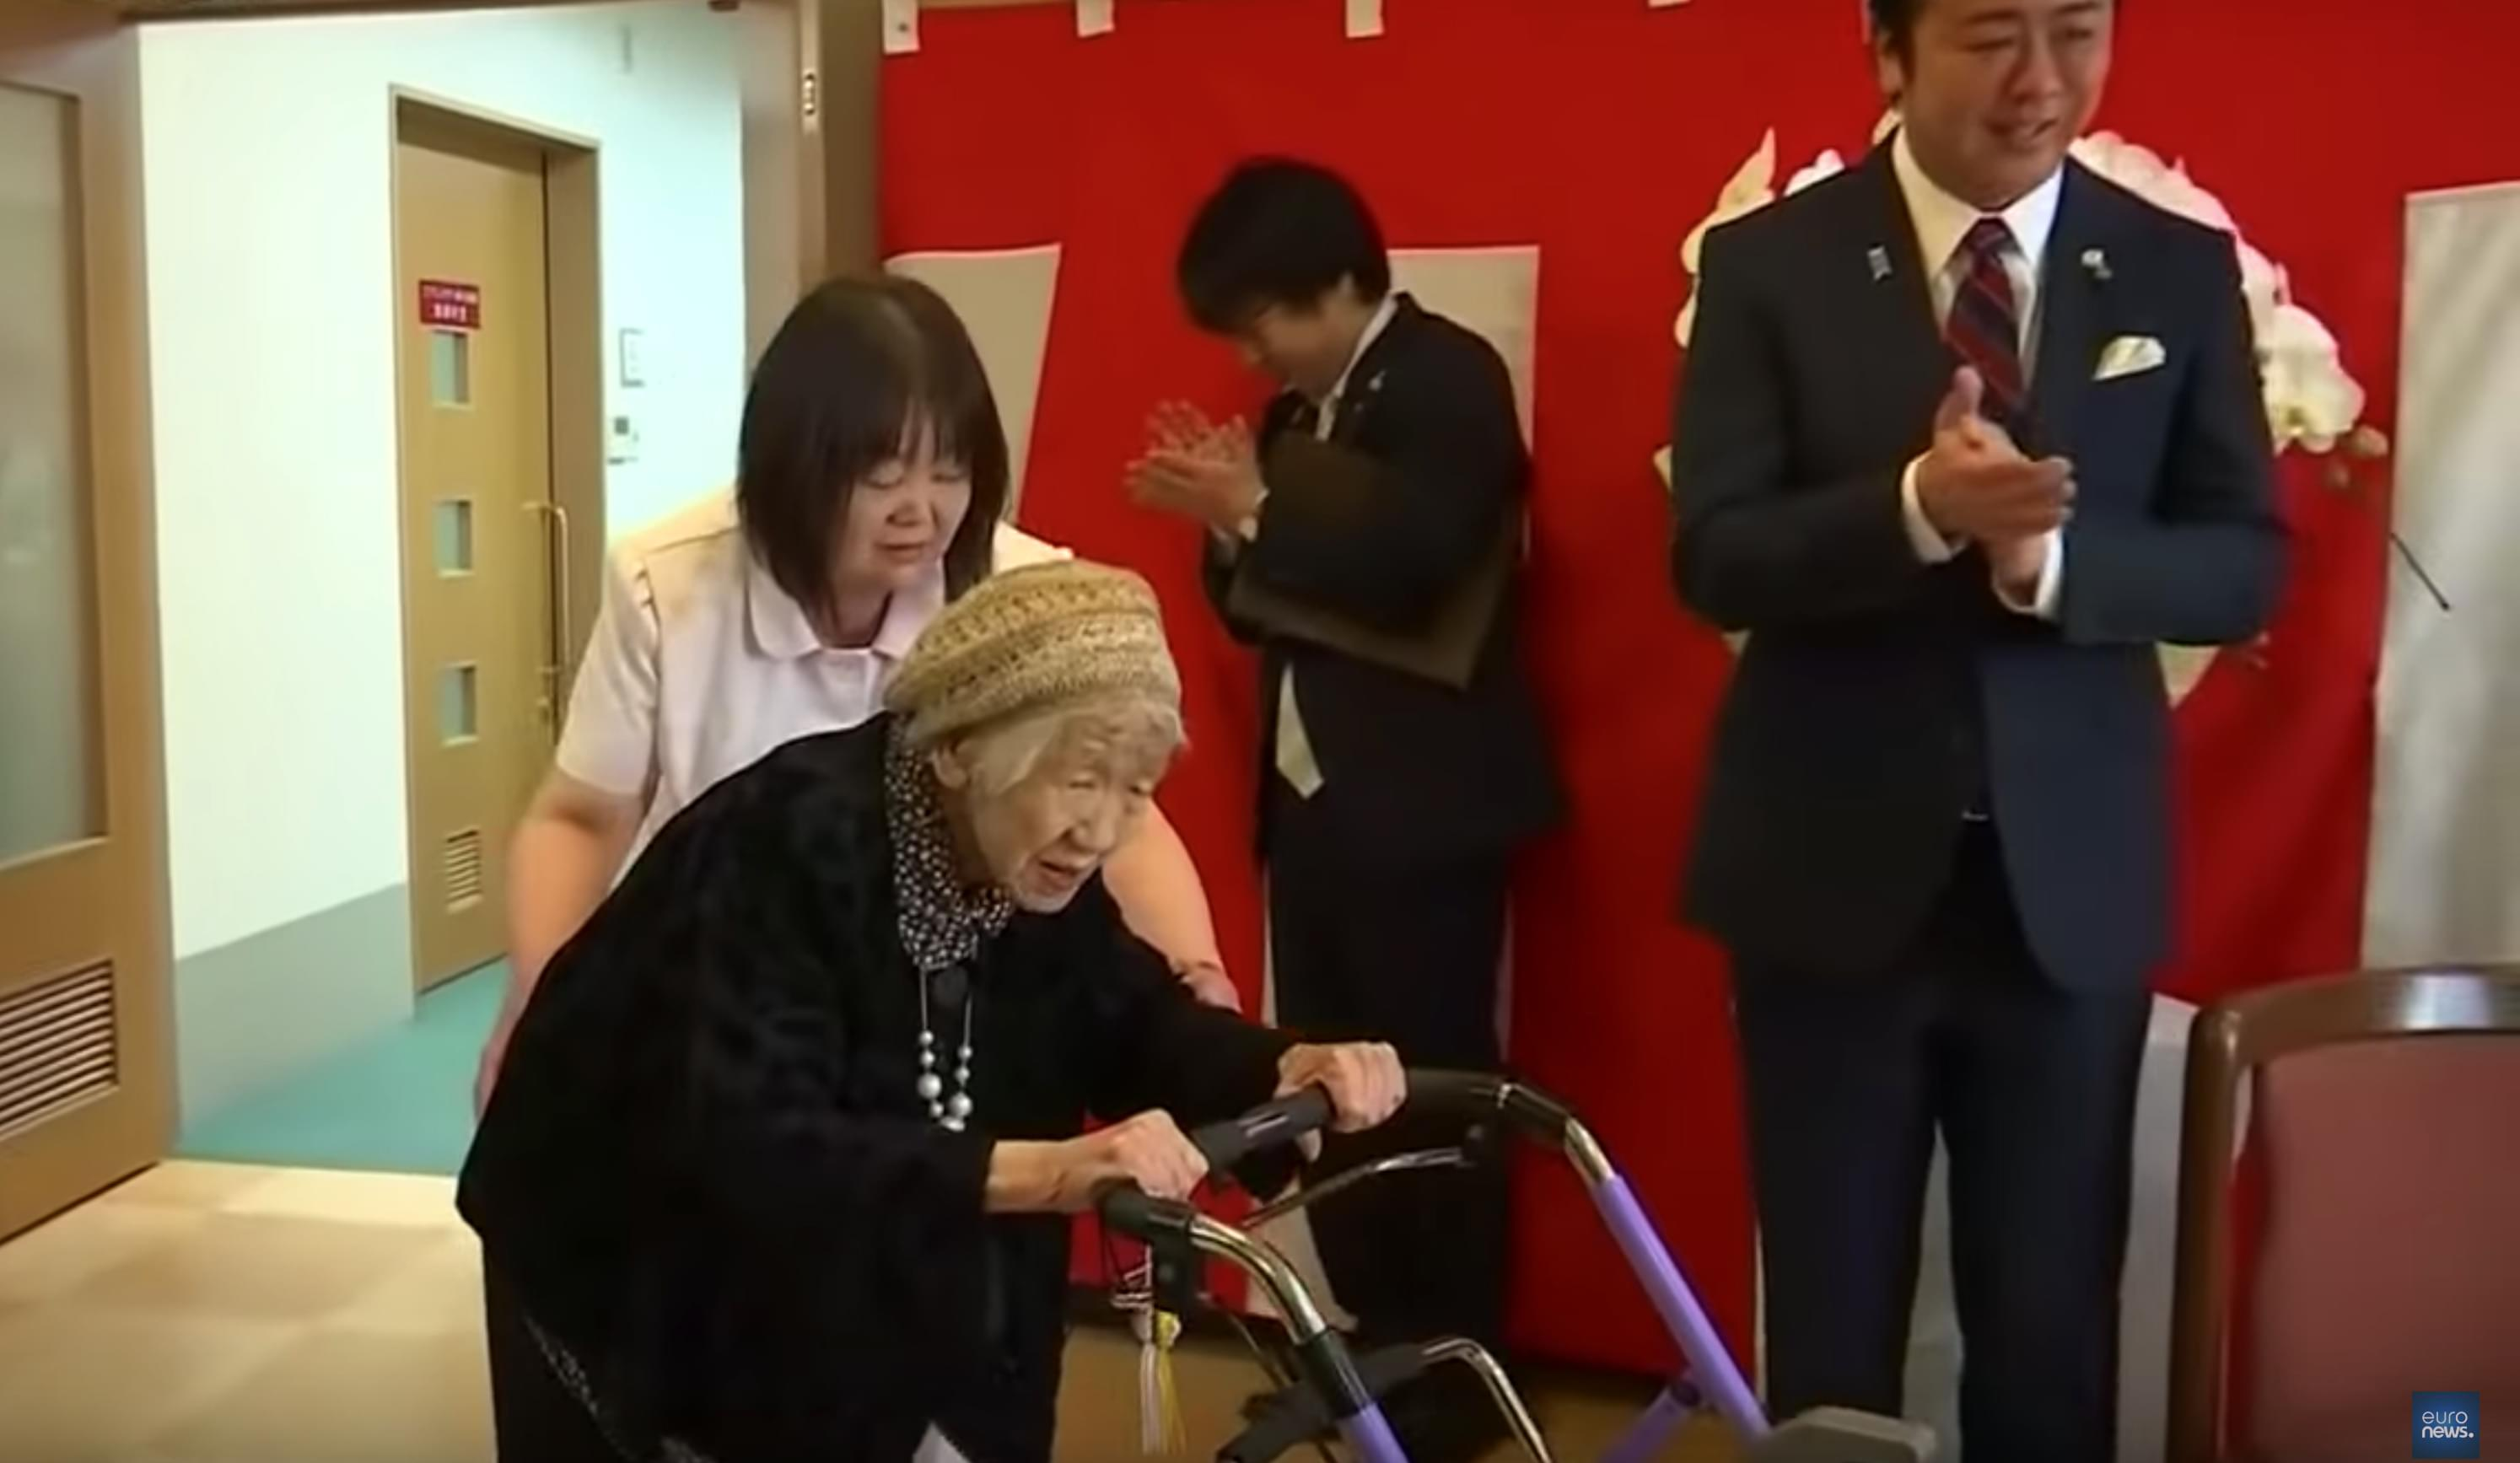 116-year-old Japanese woman recognized by Guinness as world's oldest person